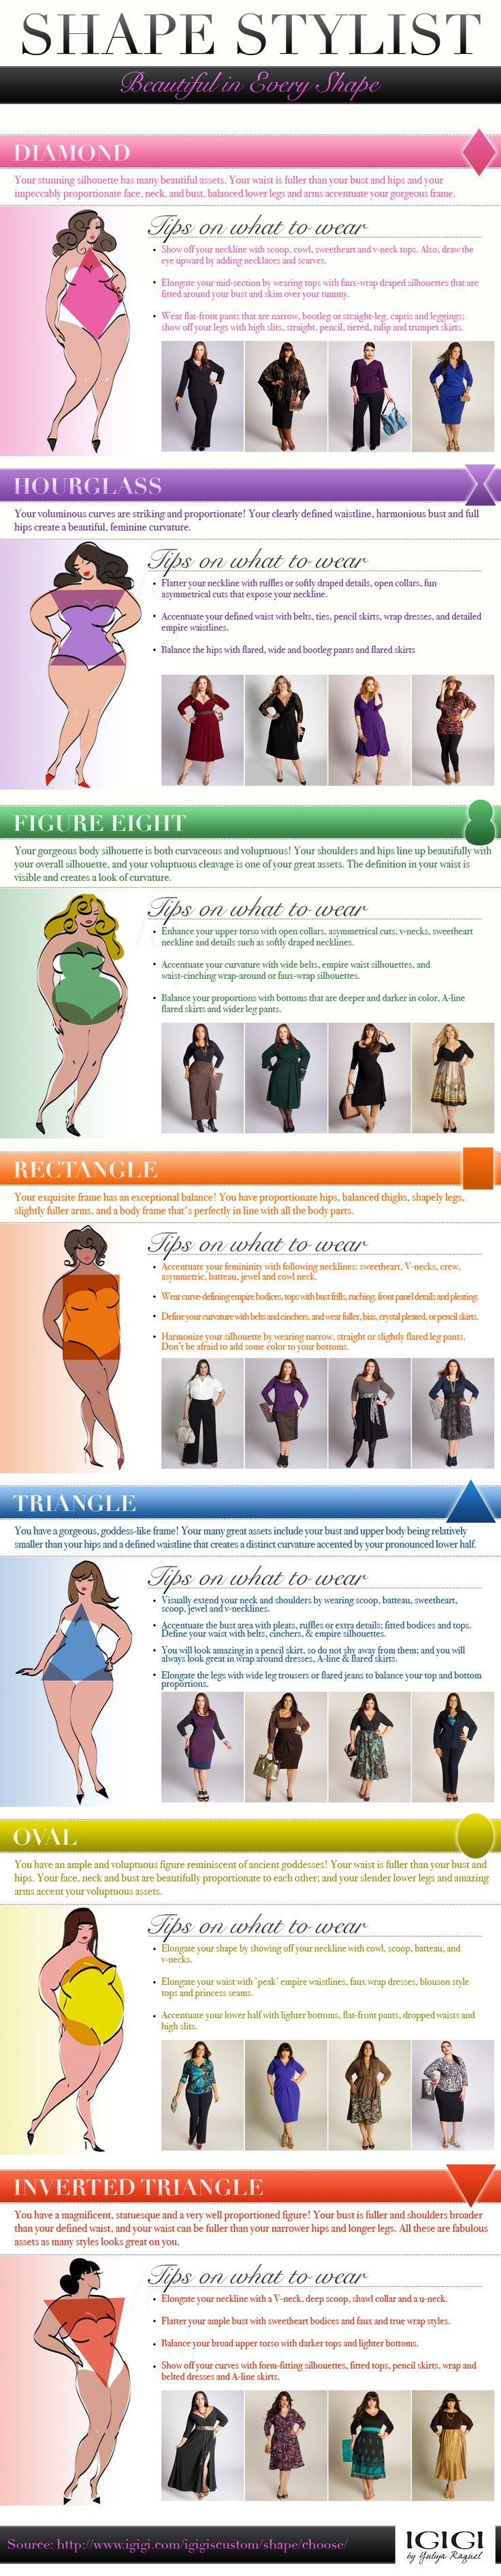 Clothing style how-to's - Dress for your body type.